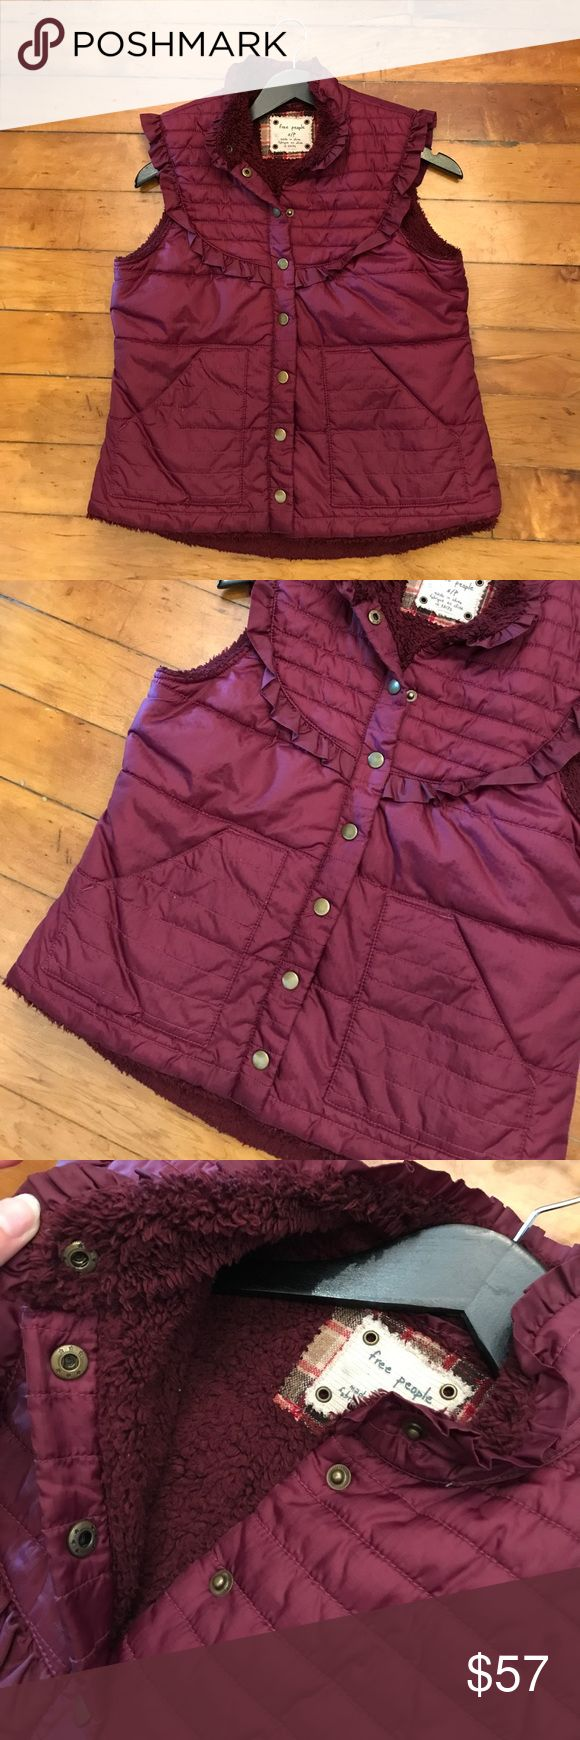 Free People Fuzzy Inside Puffer Vest Size Small ⚜️I love receiving offers through the offer button!⚜️ Good condition, as seen in pictures! Fast same or next day shipping! Open to offers but I don't negotiate in the comments so please use the offer button Check out the rest of my closet for more Adidas, Lululemon, Tory Burch, Urban Outfitters, Free People, Anthropologie, Victoria's Secret, Sam Edelman, Topshop, Asos, Revolve, Brandy Melville, Zara, and American Apparel! Free People Jackets…